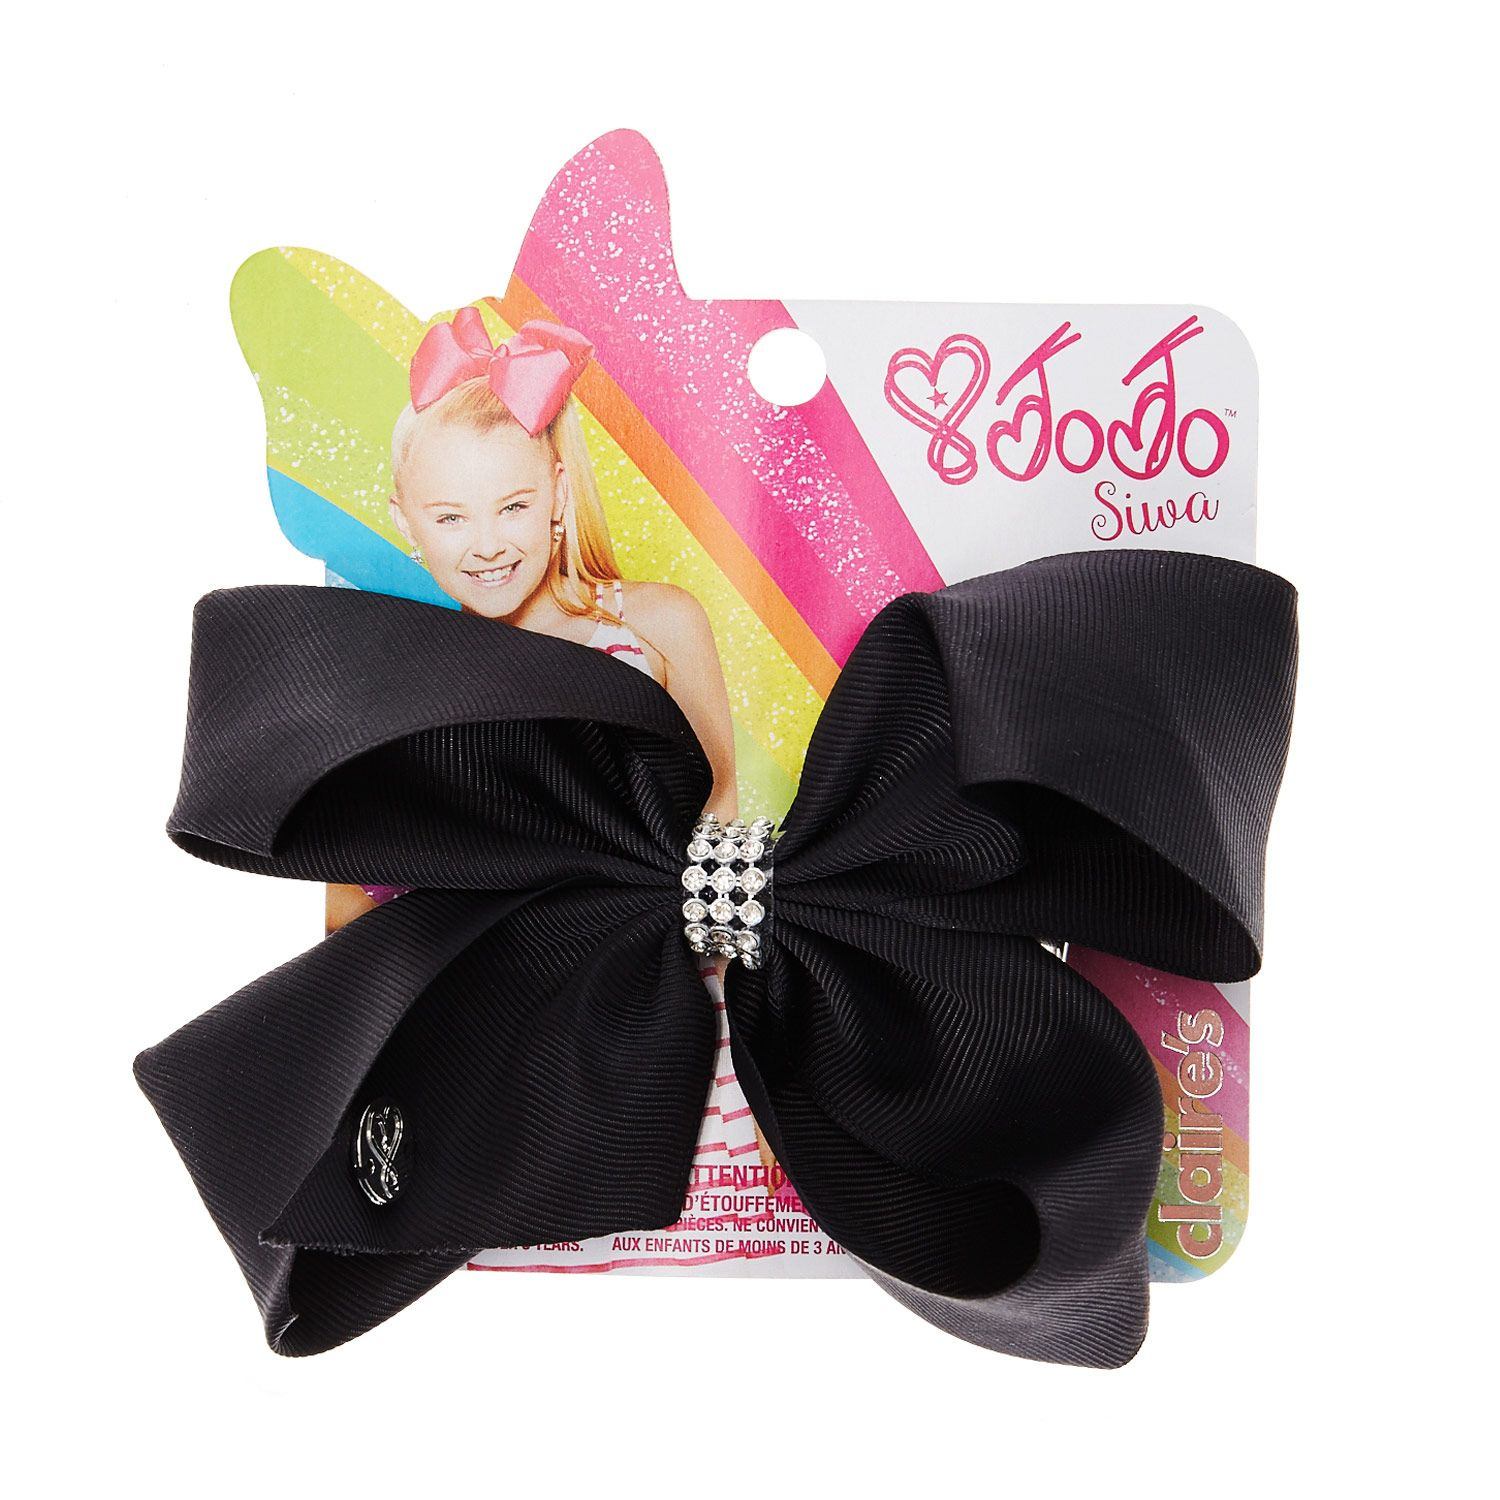 Black bow hair accessories -  P Add Some Super Cute Style To Your Hair With This Small Black Bow